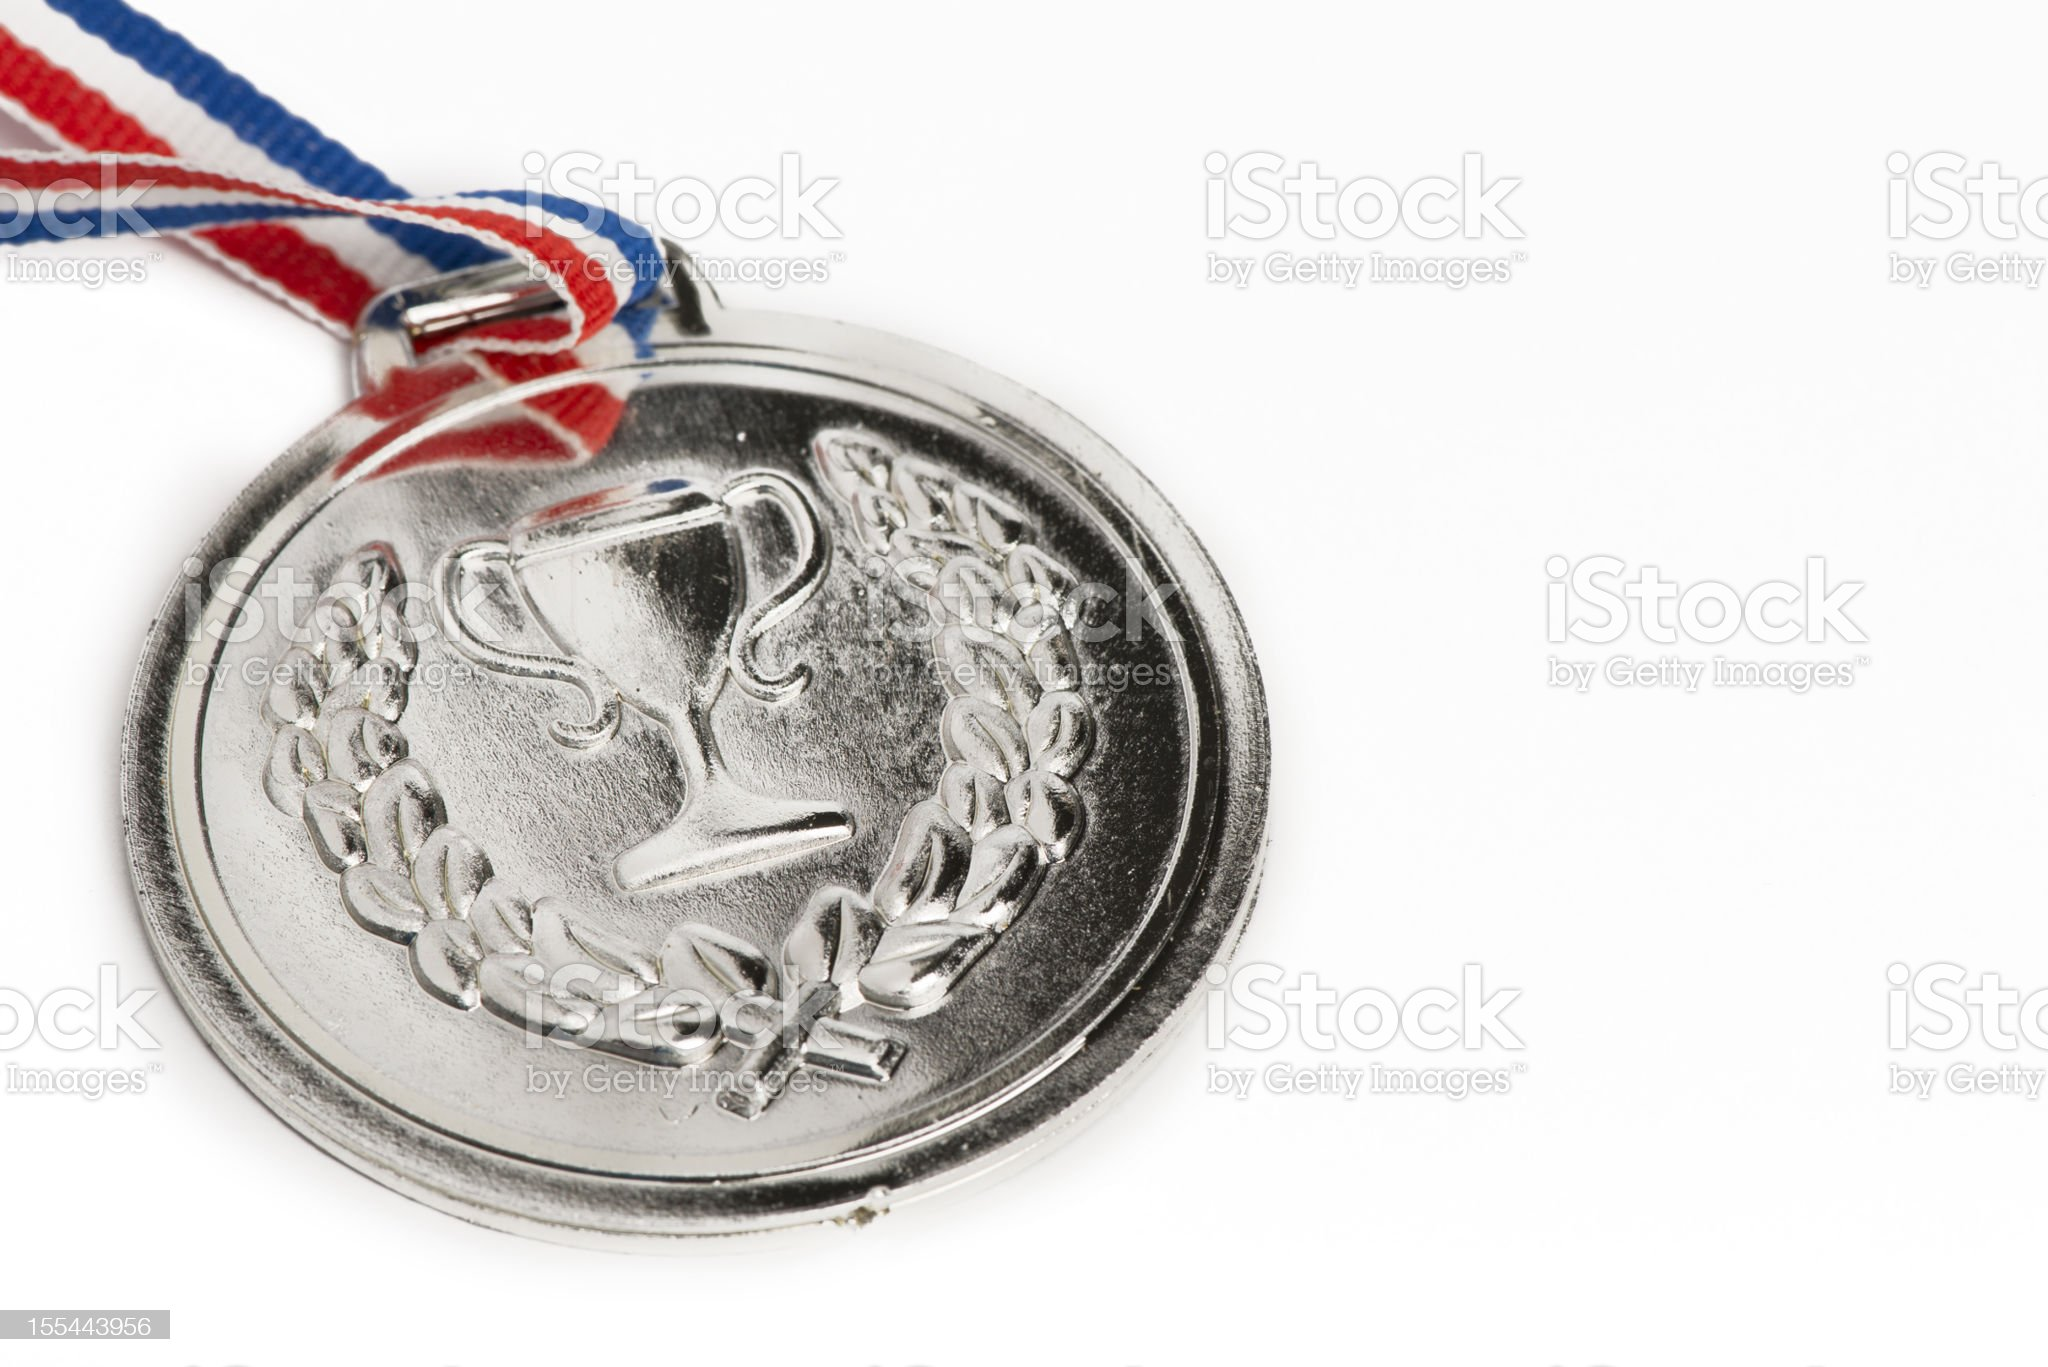 Olympic medals isolated on white: Silver royalty-free stock photo